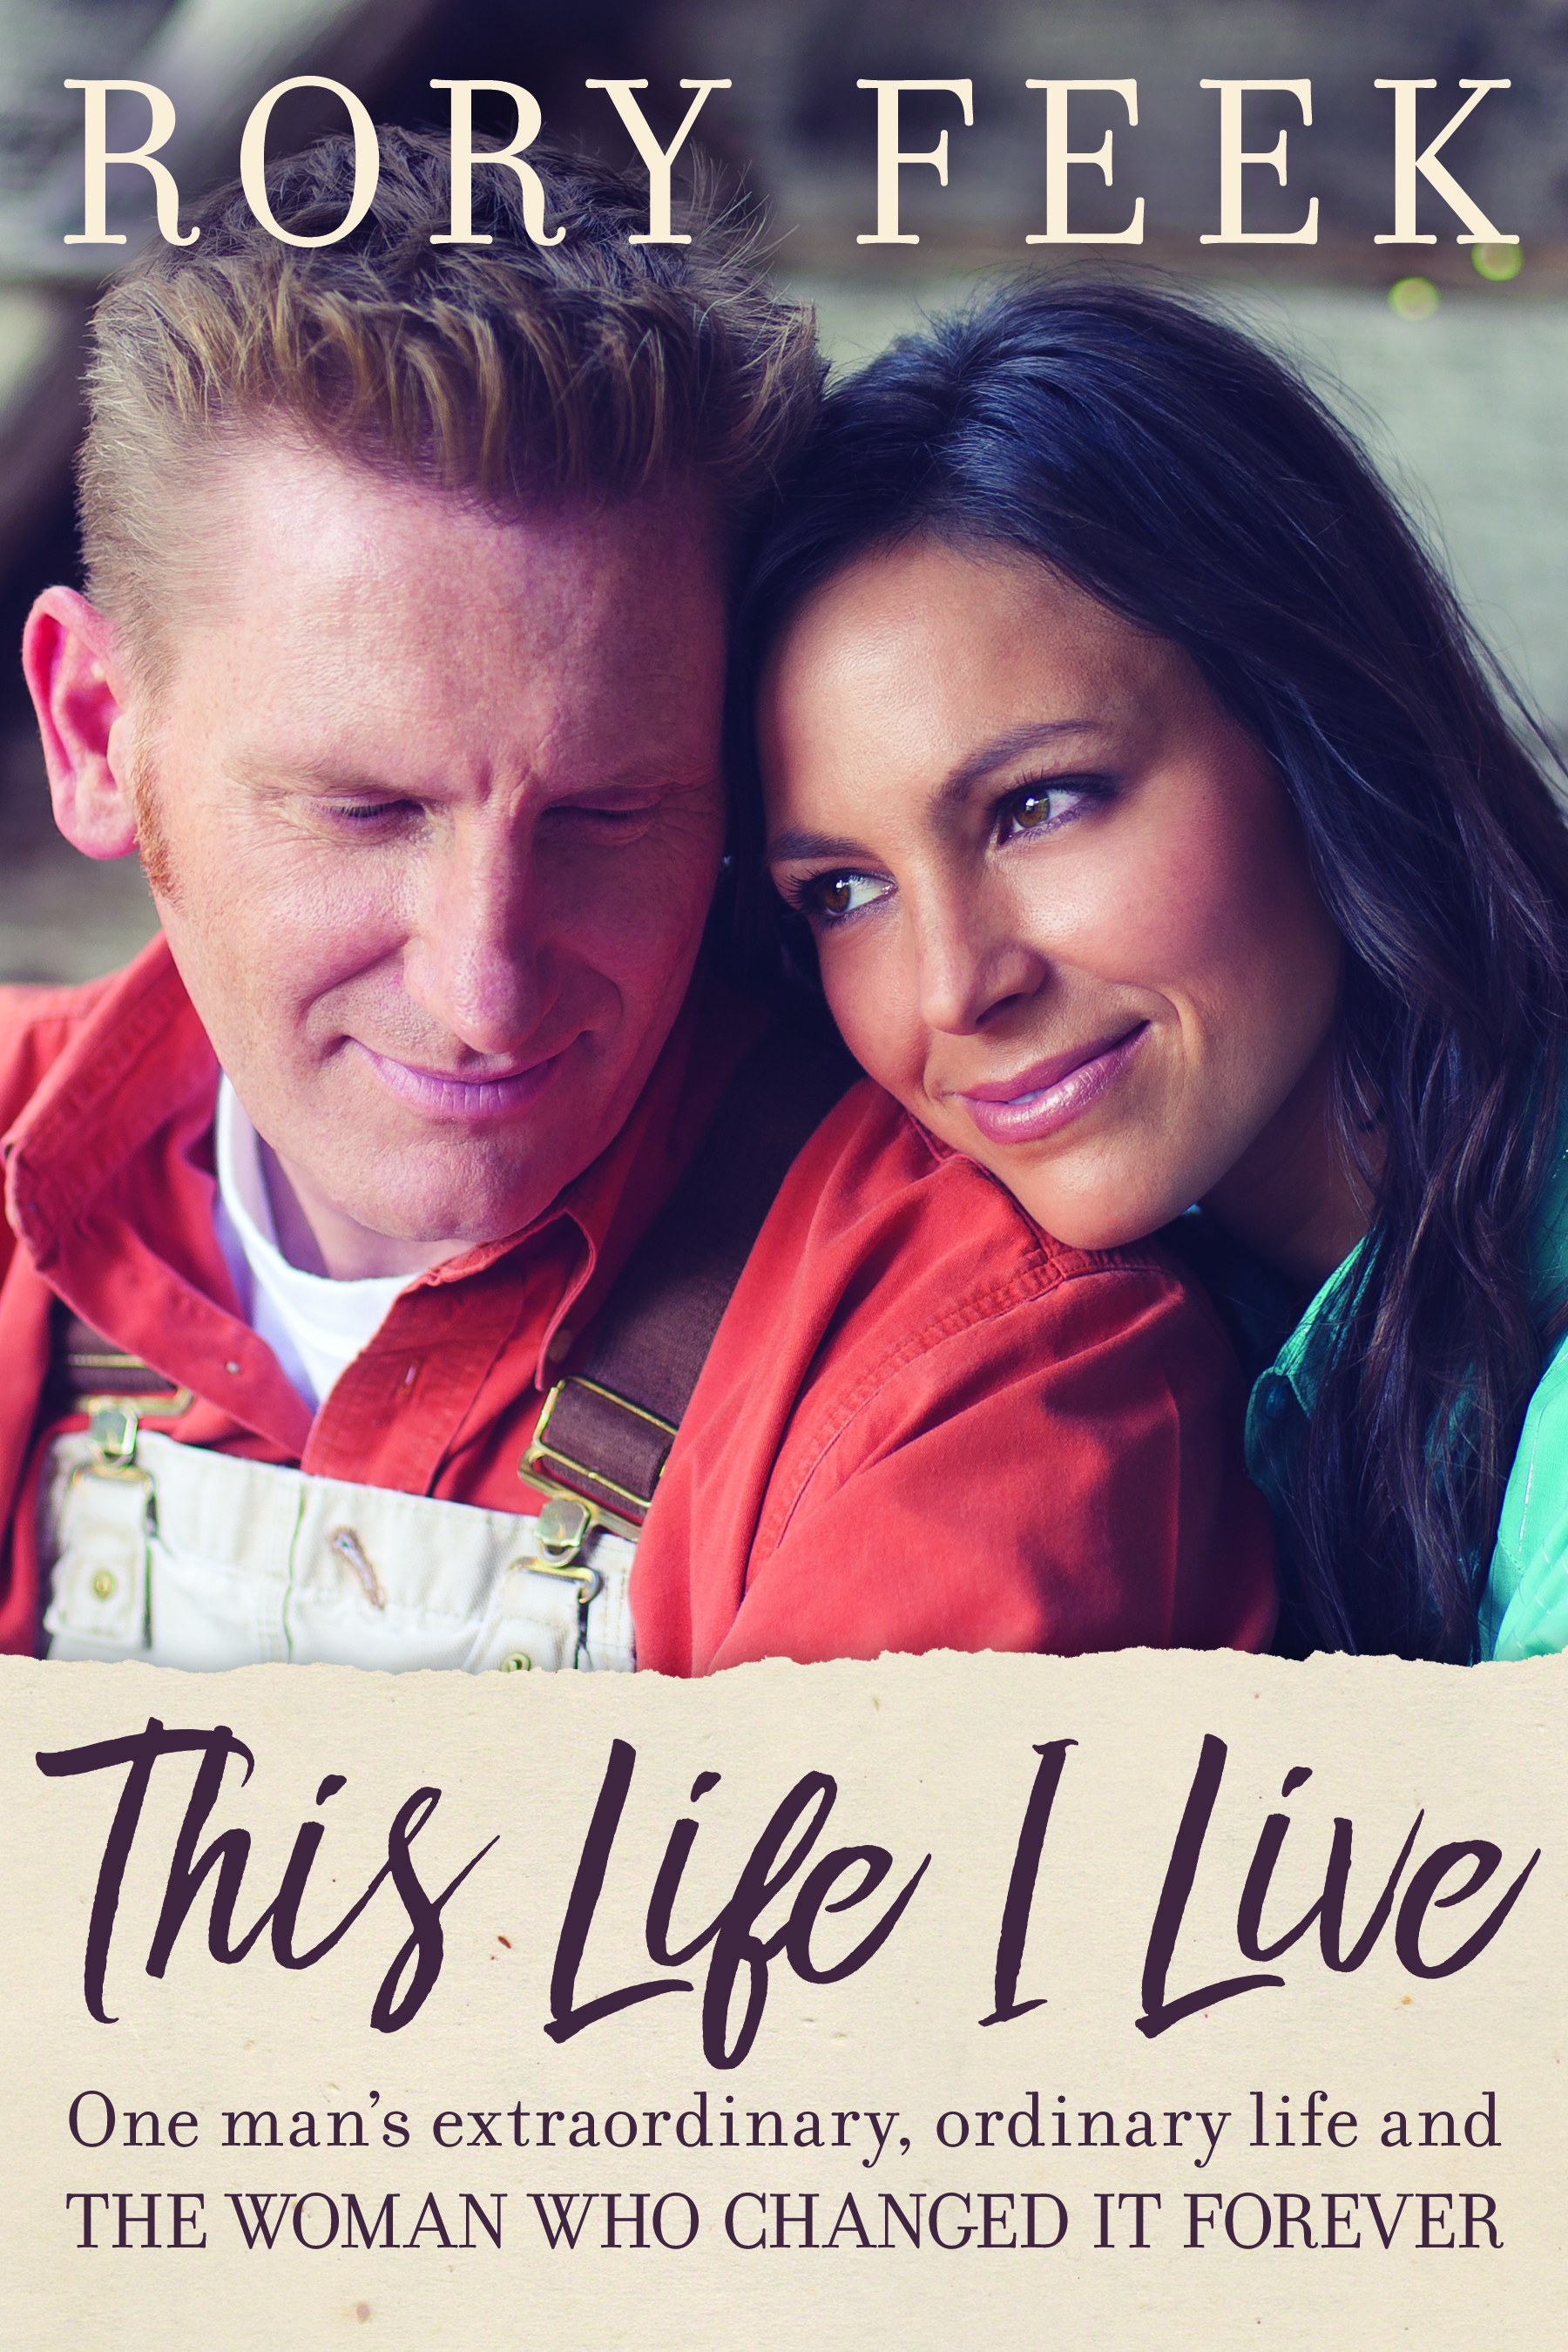 This Life I Live by Rory Feek - One man's extraordinary, ordinary life and the woman who changed it forever.